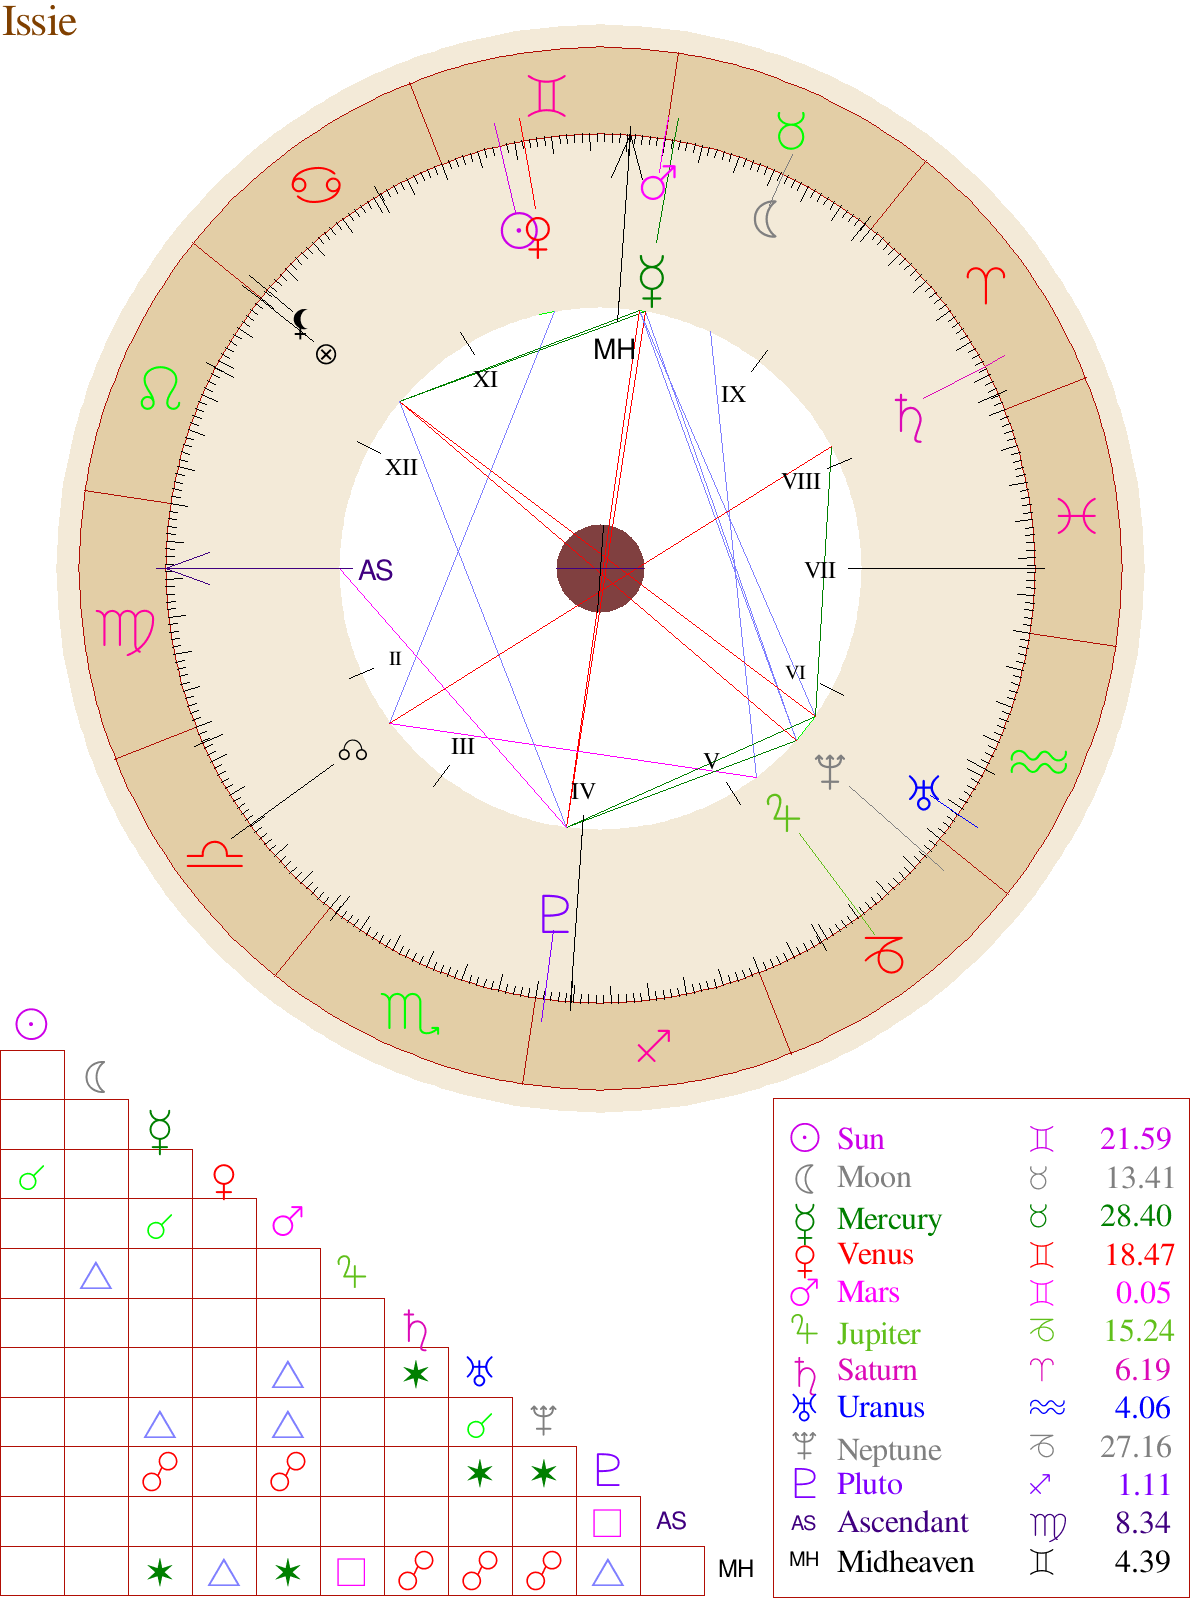 Pin by Issie Griffith on Life Hacks   Birth chart, Astrology, Free ...